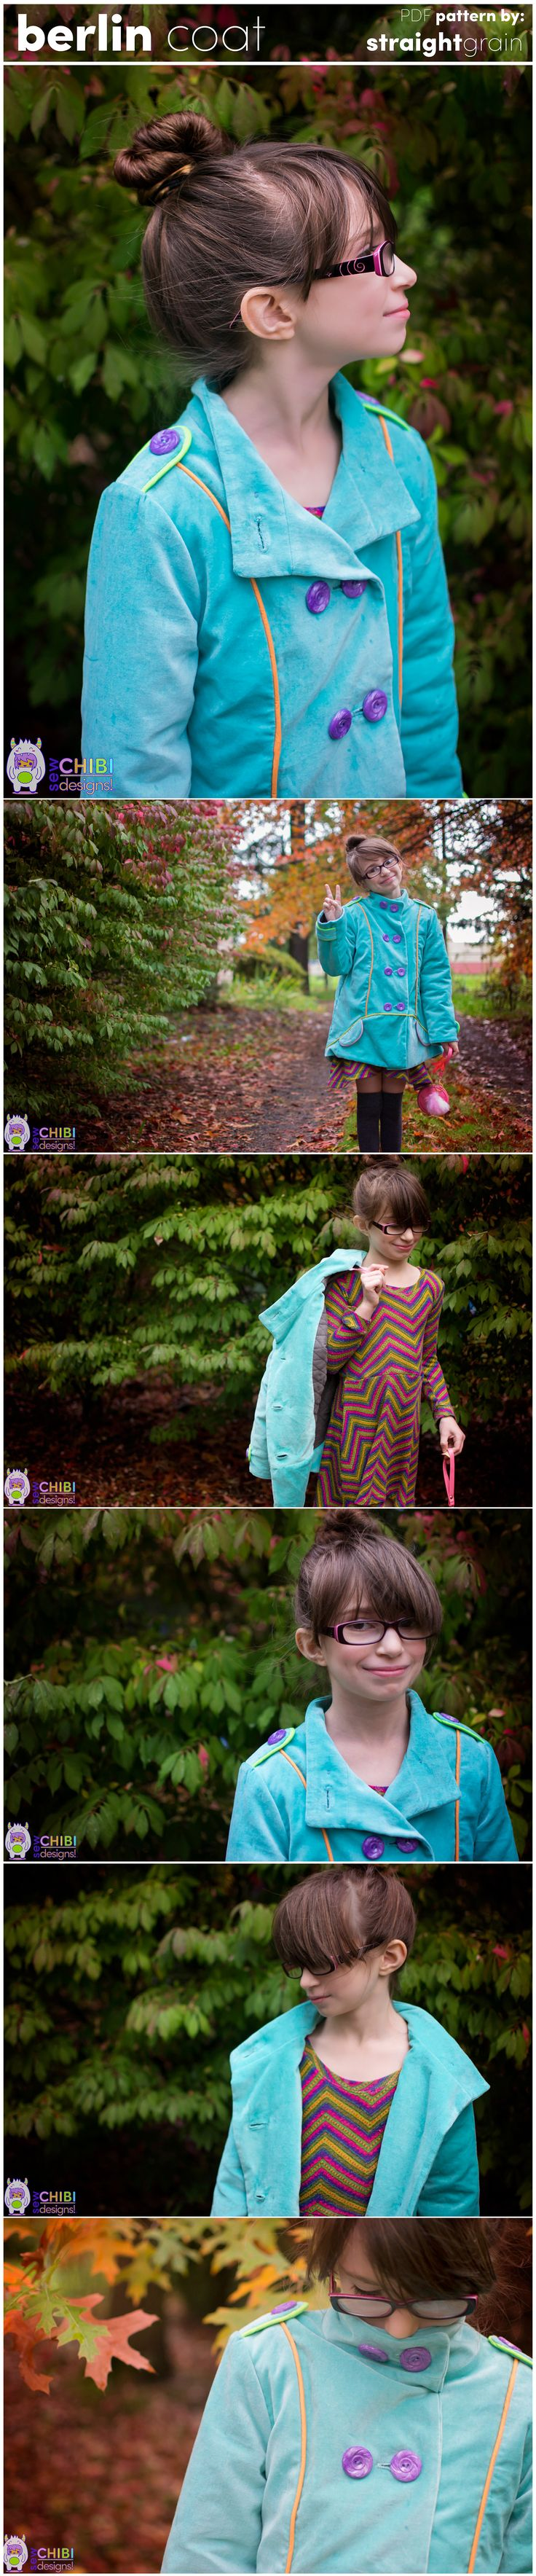 The Berlin Coat PDF Pattern by Straightgrain, sewn by Sew Chibi Designs. A pea-coat perfect for winter fashion sewing for the kiddos!